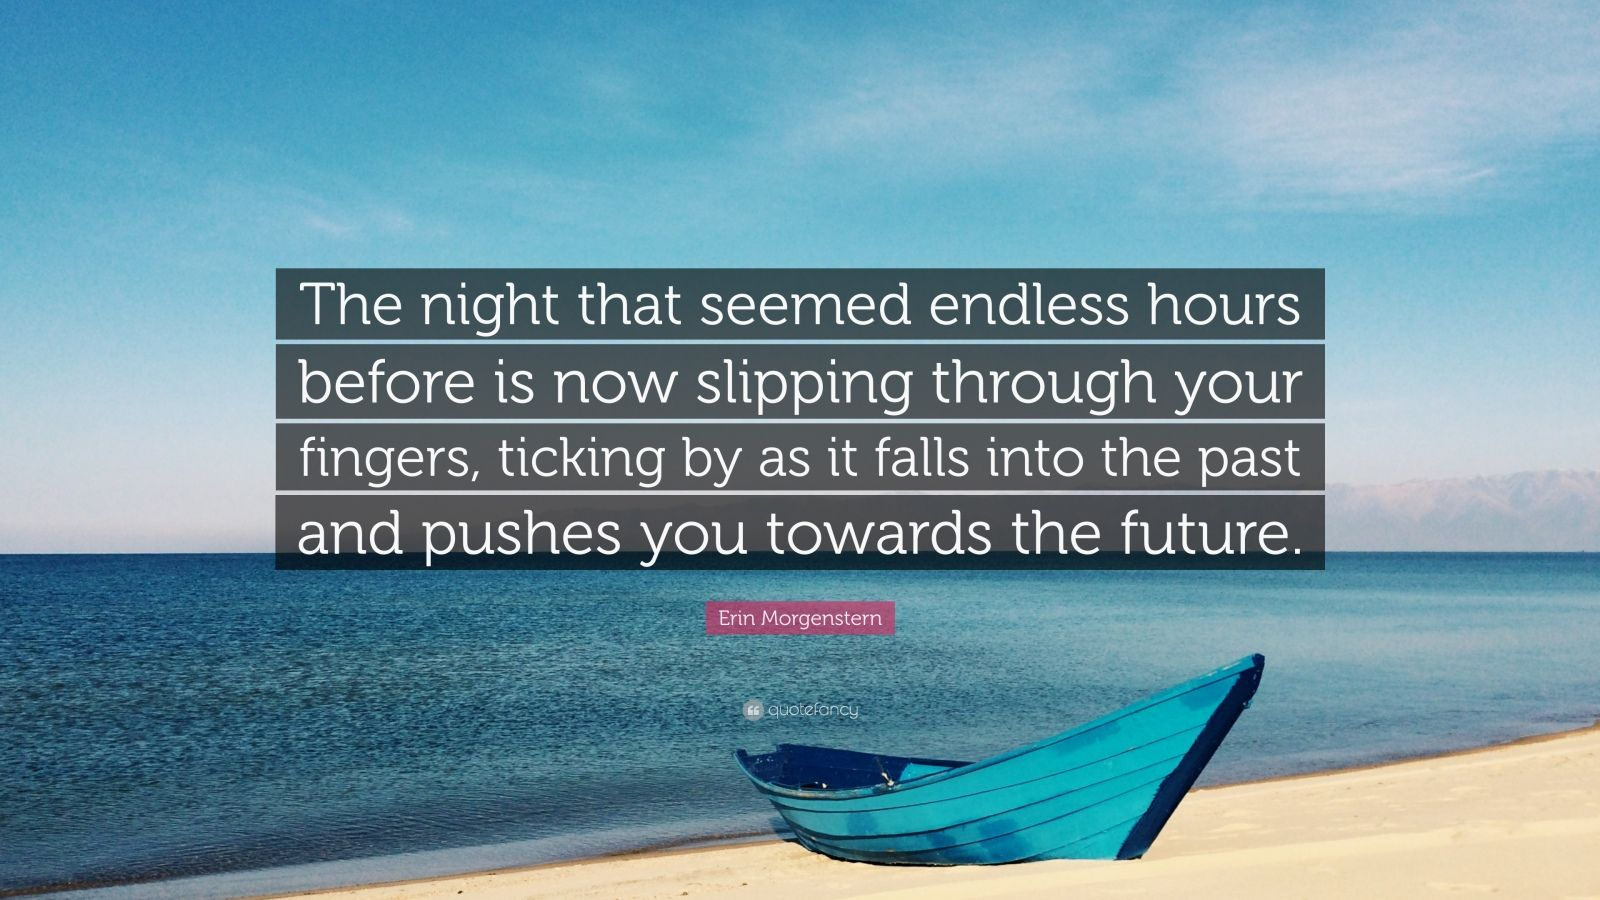 """Erin Morgenstern Quote: """"The night that seemed endless hours before is now slipping through your fingers, ticking by as it falls into the past and pushes you towards the future."""""""